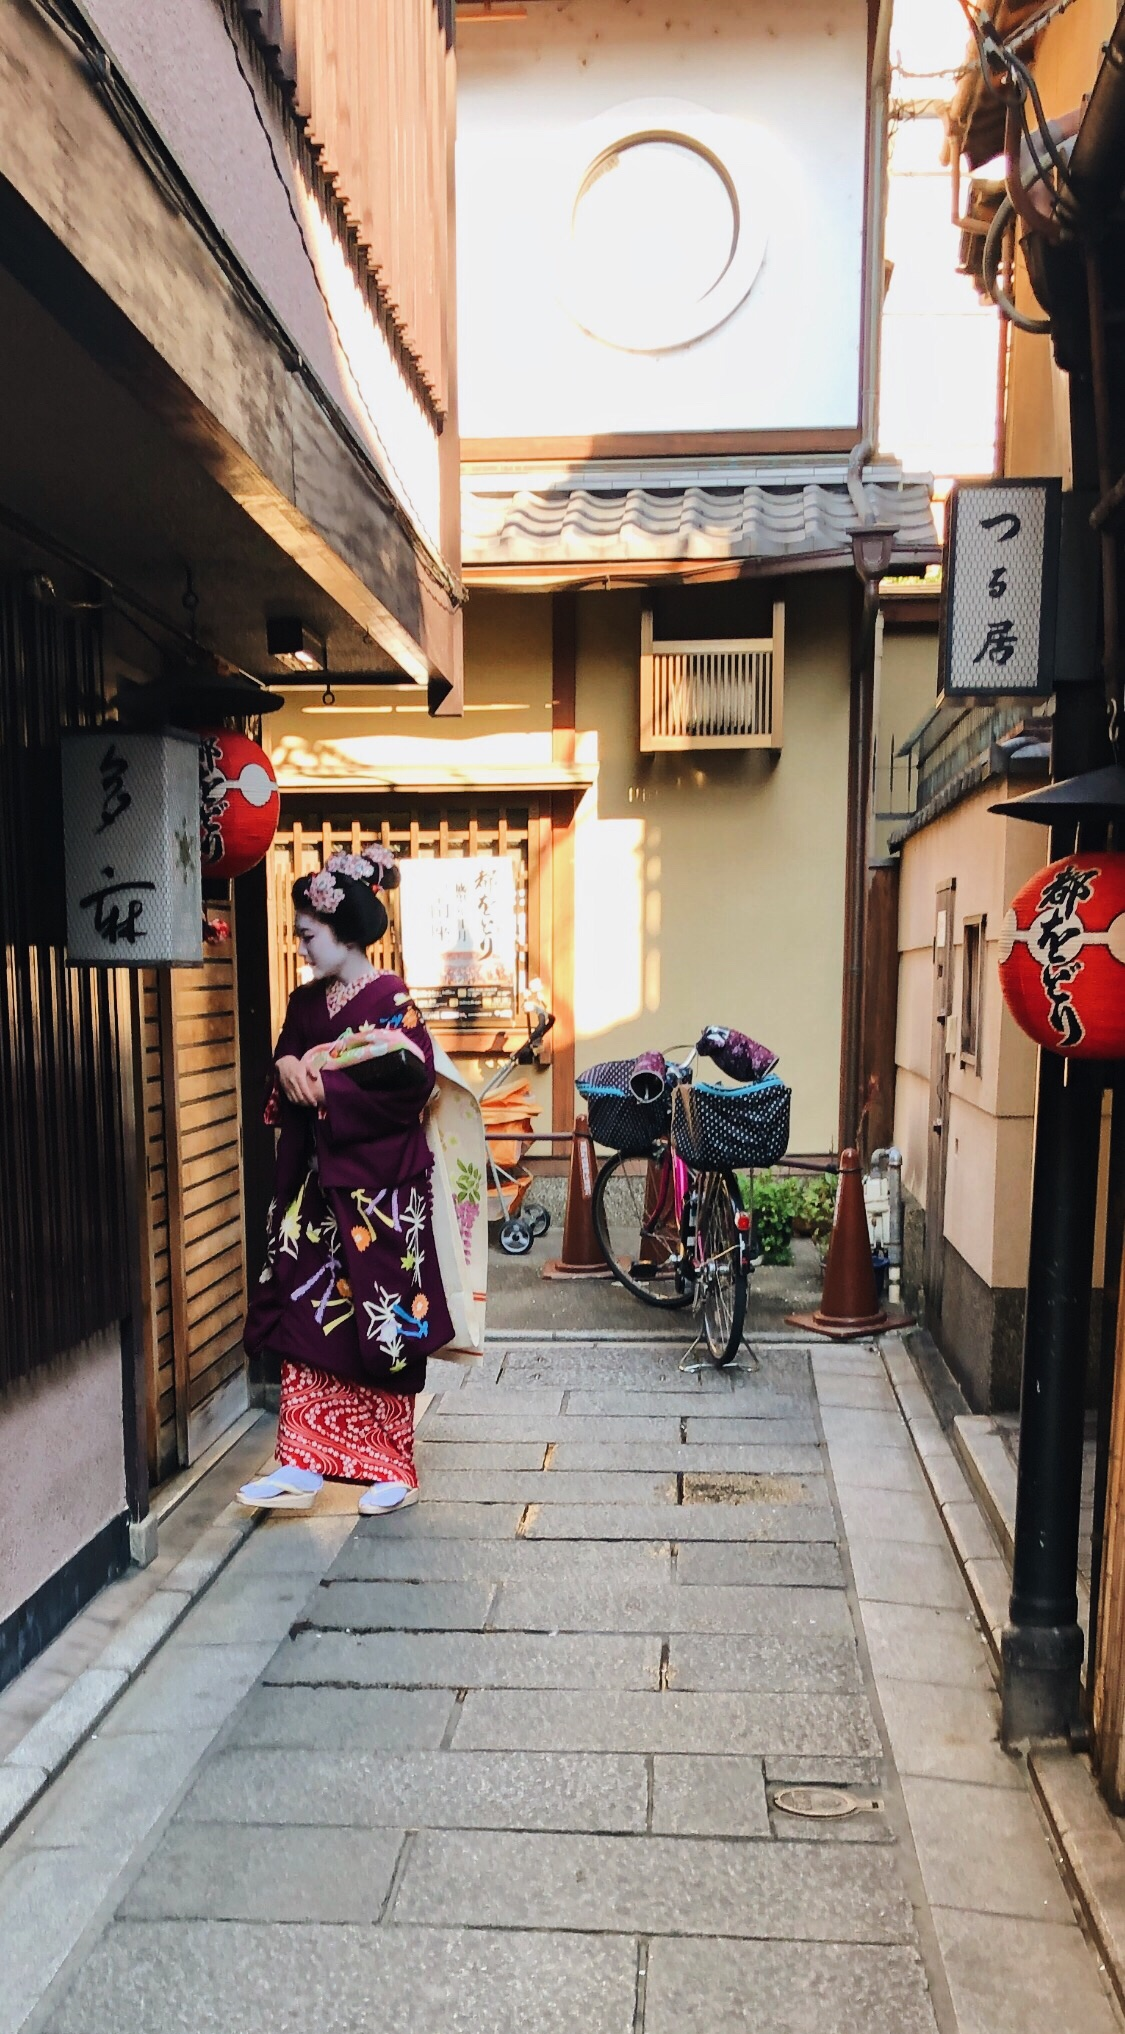 I barely caught a glimpse of this geisha as she dashed from one building to the next!